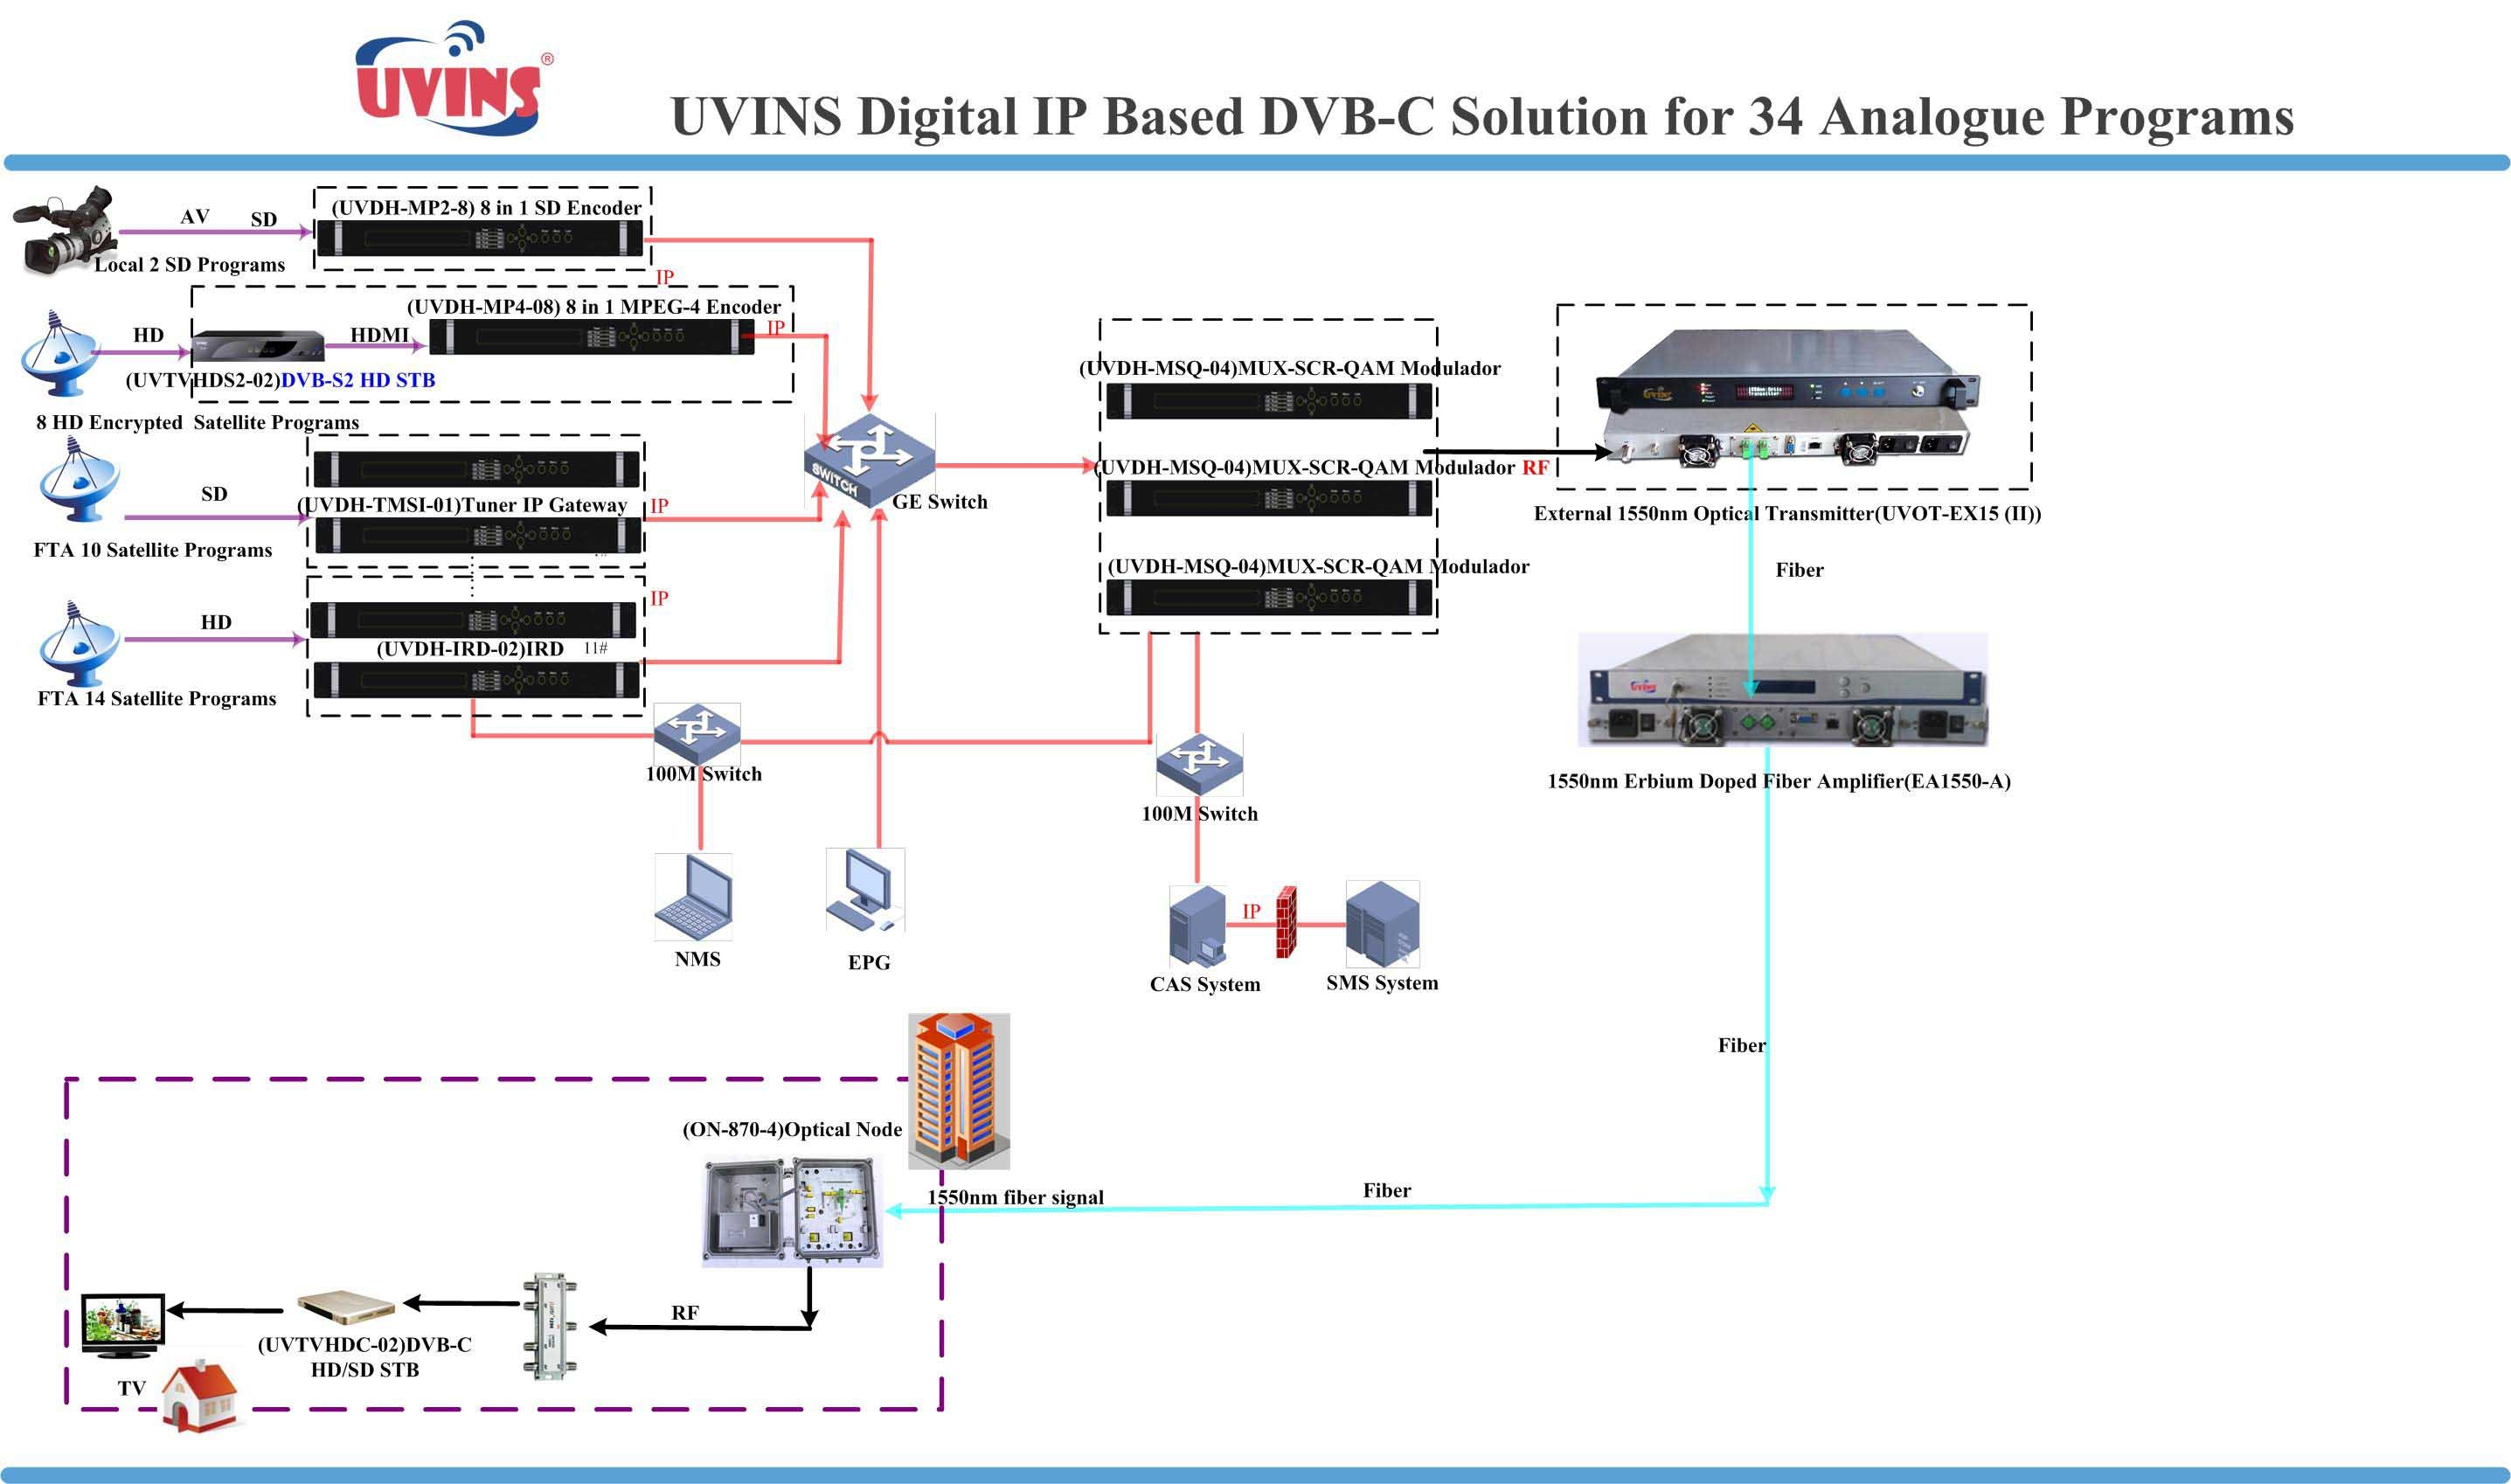 DVB-C IP Based DVB-C Solution for 34 analog programs